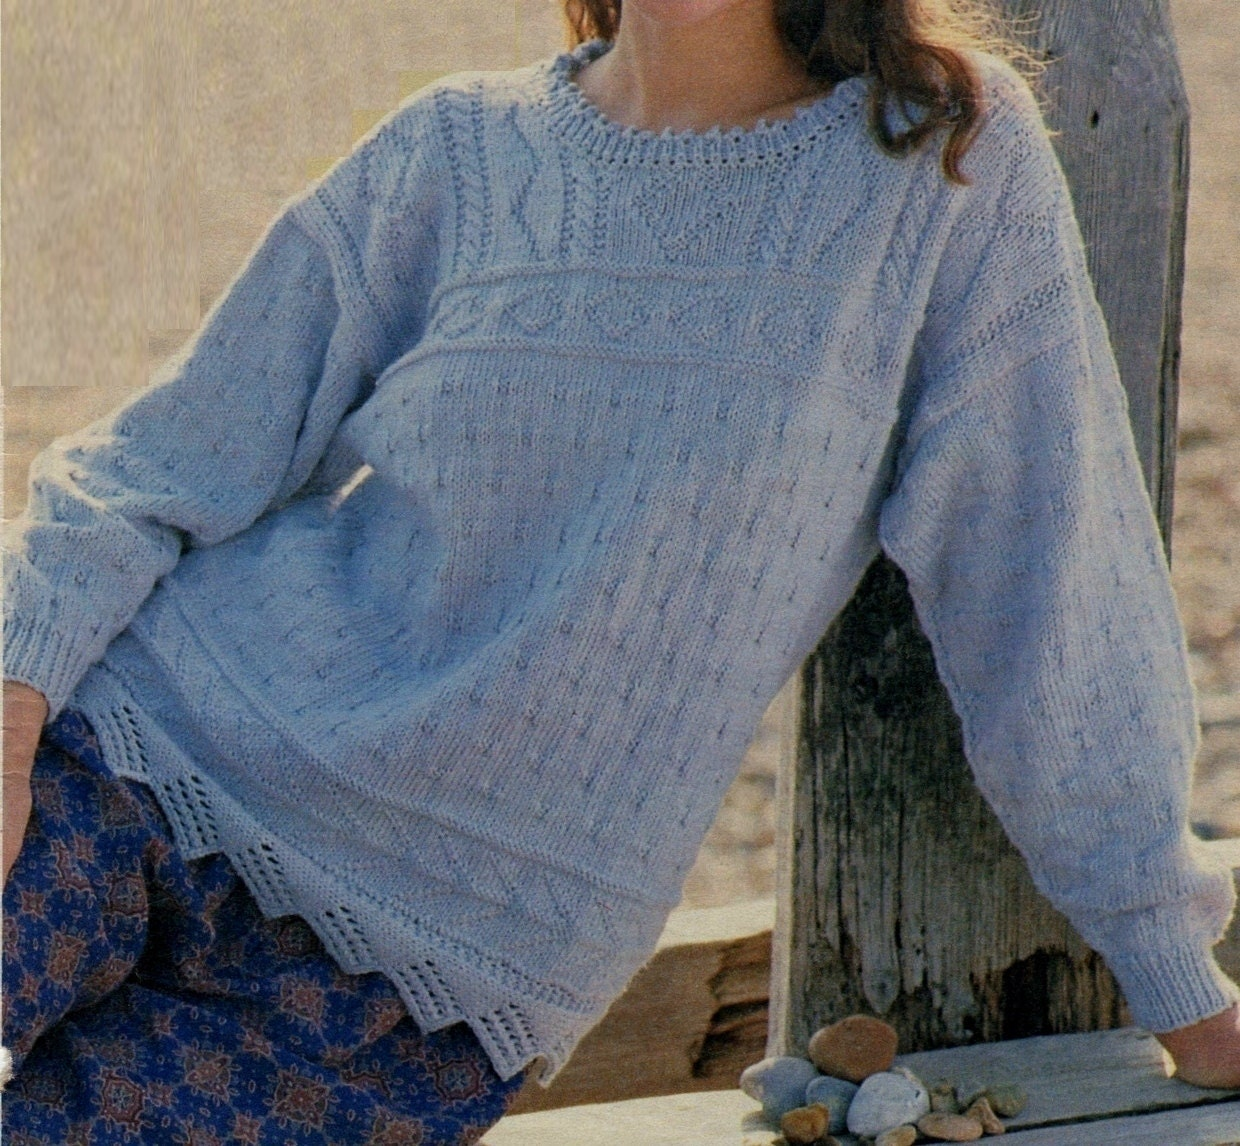 b6171f3da Instant PDF Download Vintage Row by Row Knitting Pattern to make Ladies  Loose Fitting Oversize Textured Tunic Sweater Pullover Jumper 32-38